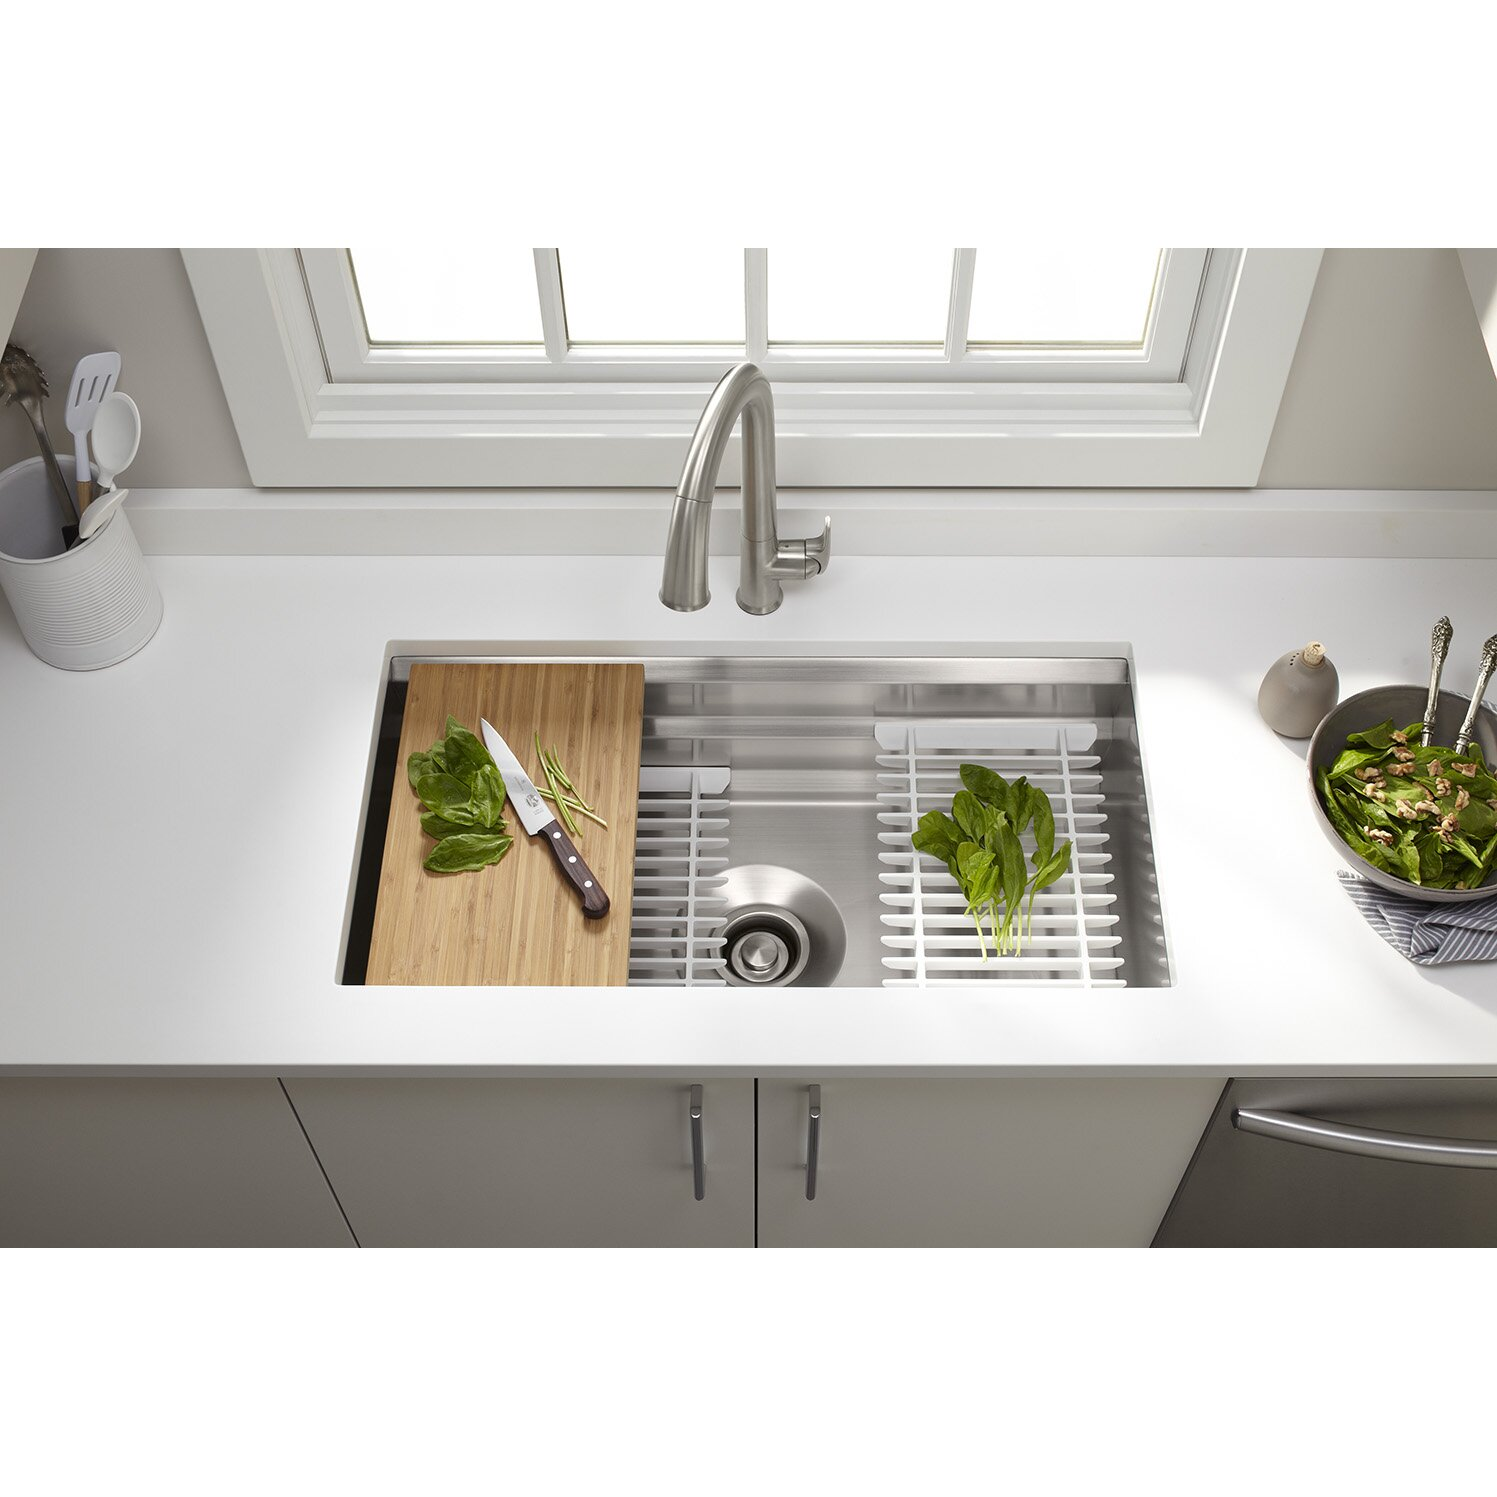 Prolific 33 X 17 3 4 X 11 Undermount Single Bowl Kitchen Sink With Accessories Reviews